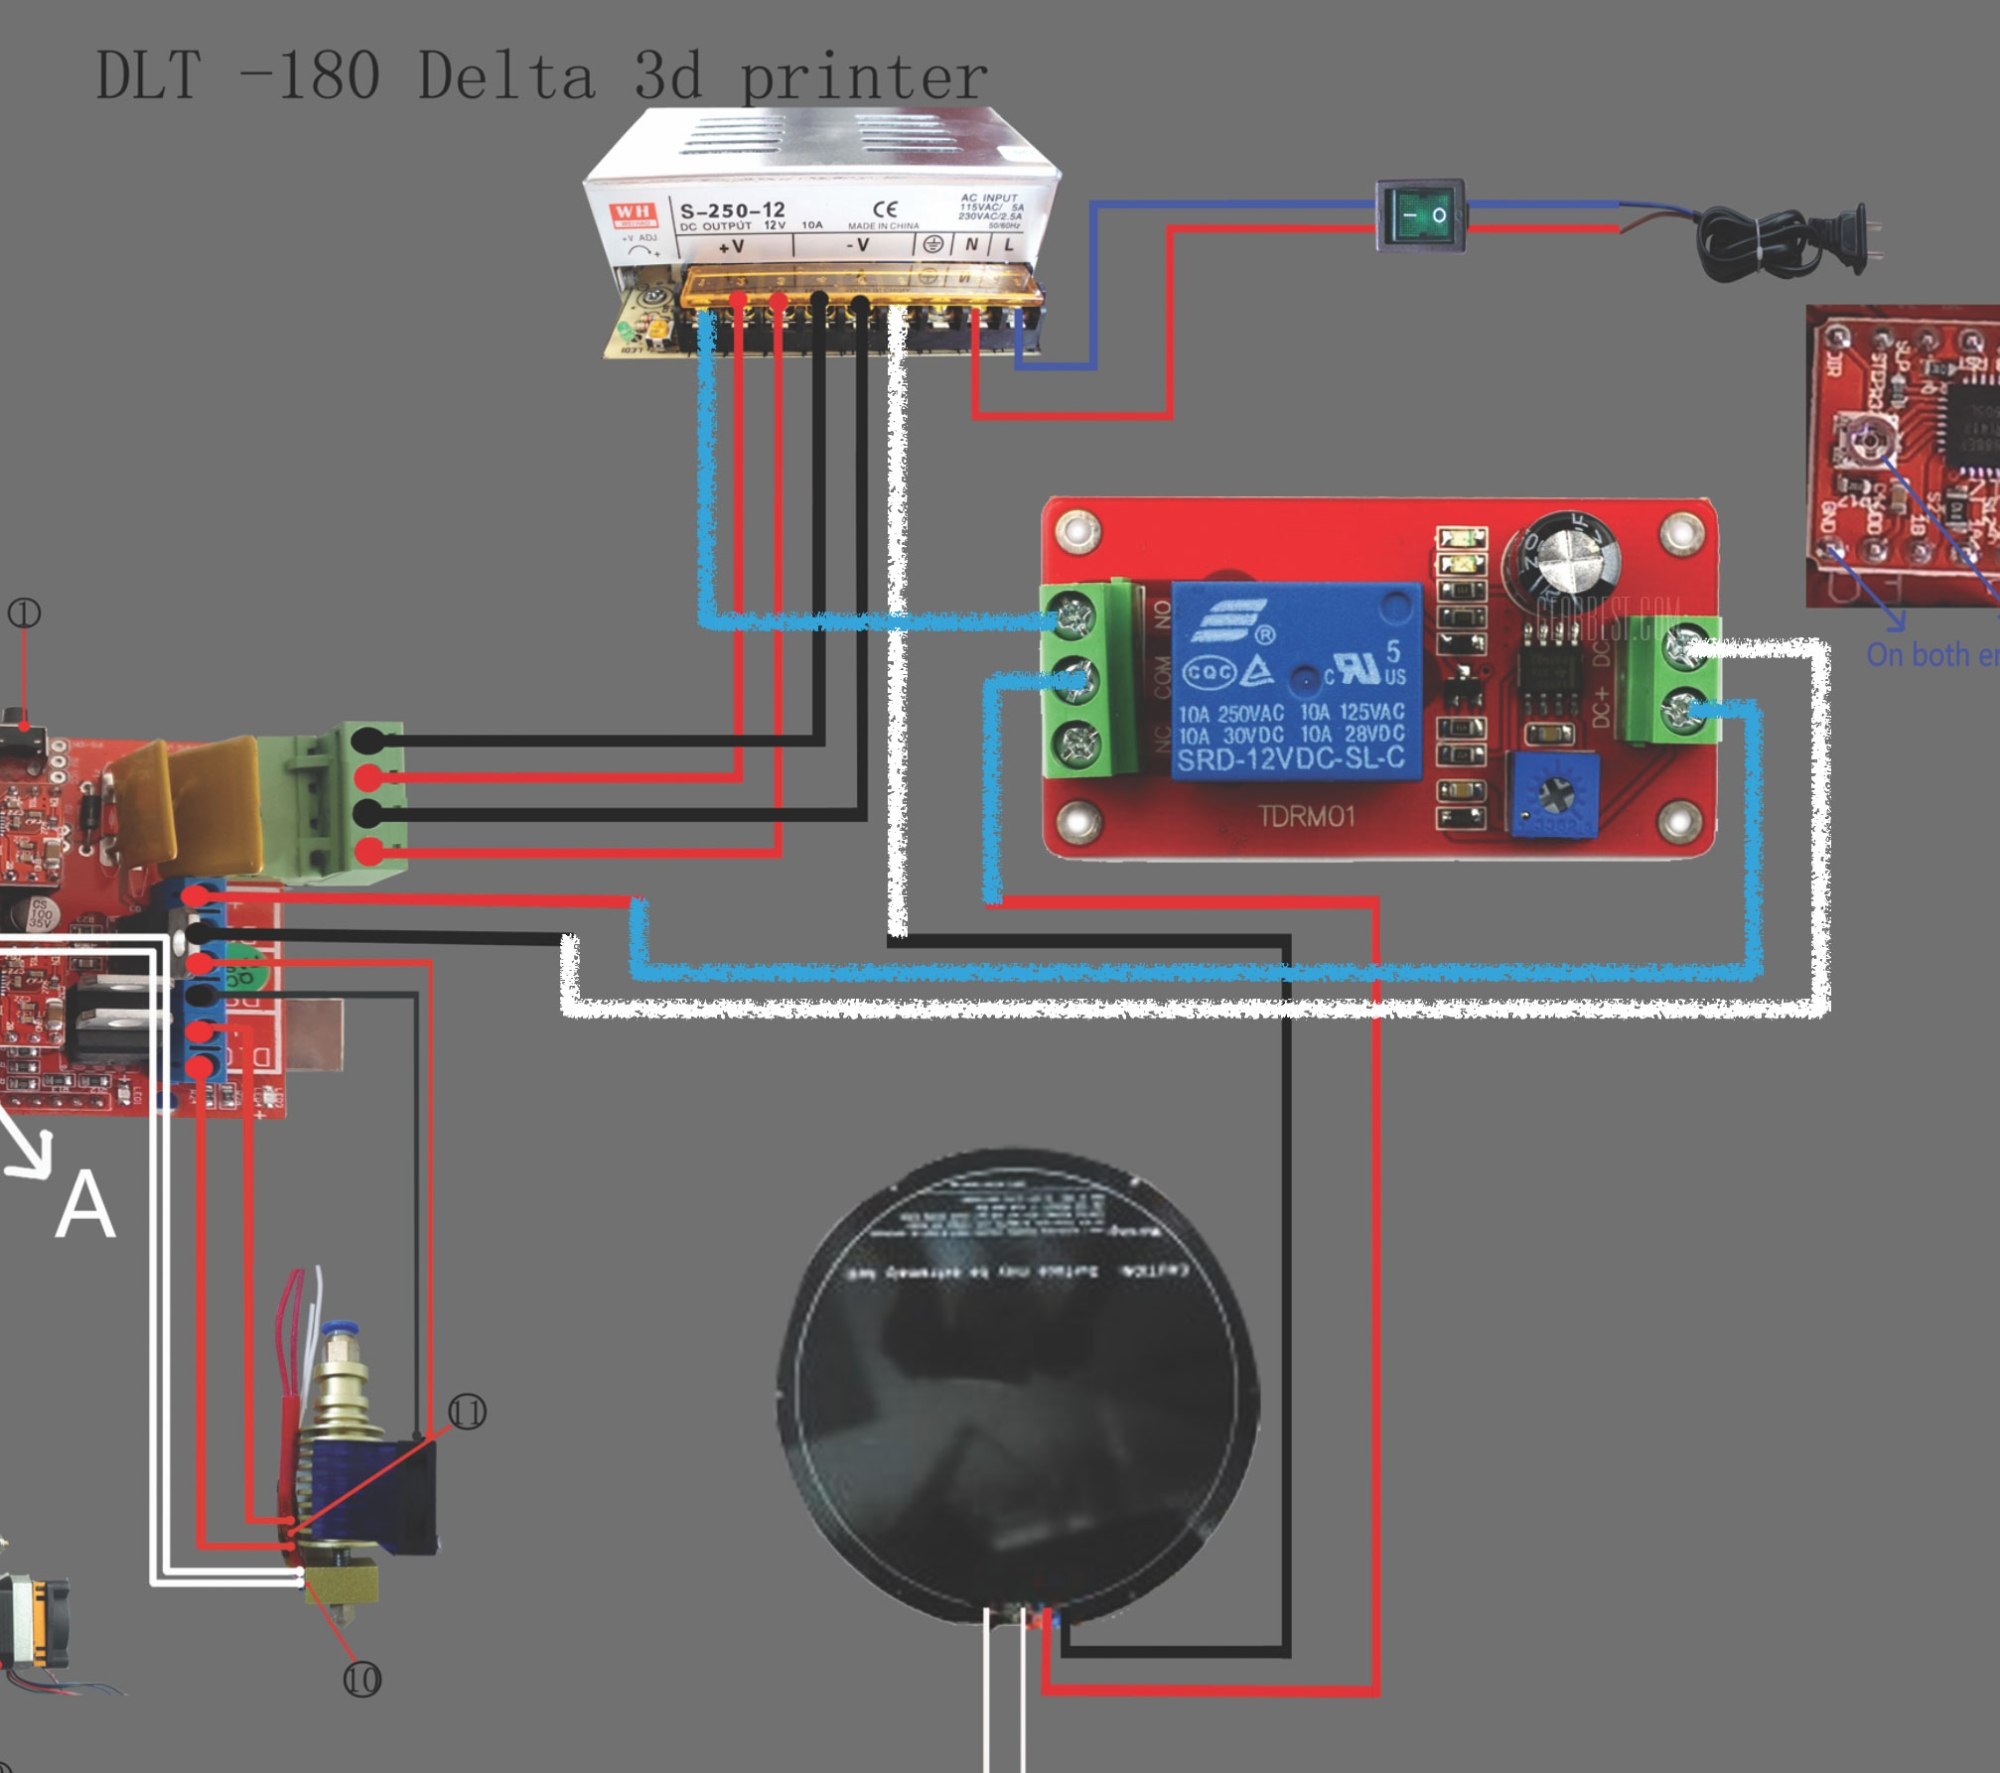 hight resolution of he3d delta dlt 180 heat bed relay wiring 3d printers talk newwiring copy 0 jpg2014 1786 321